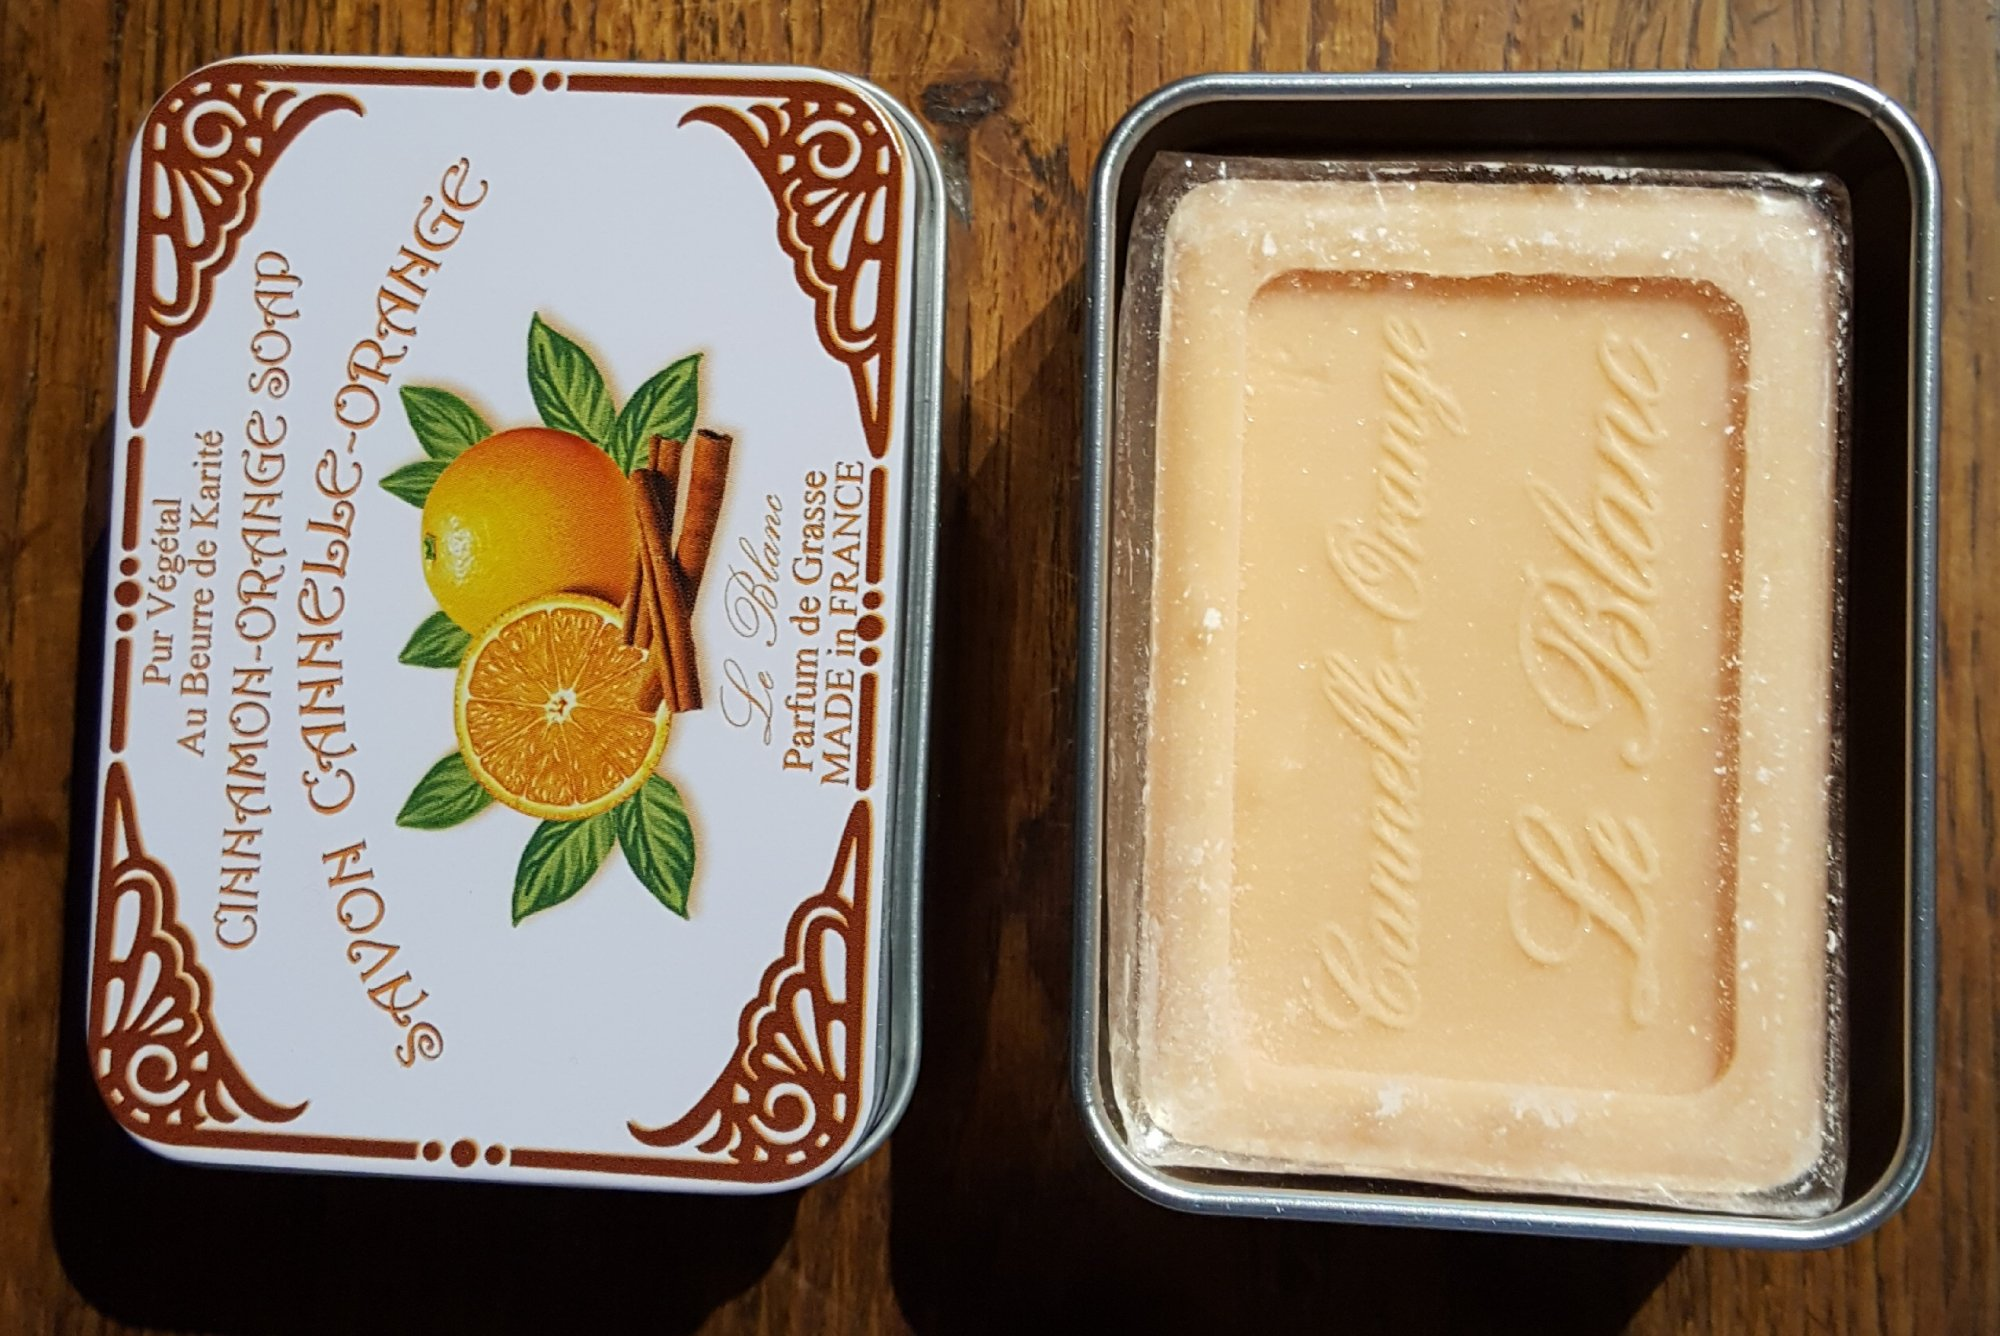 French Orange and Cinnamon Soap in a tin by Le Blanc